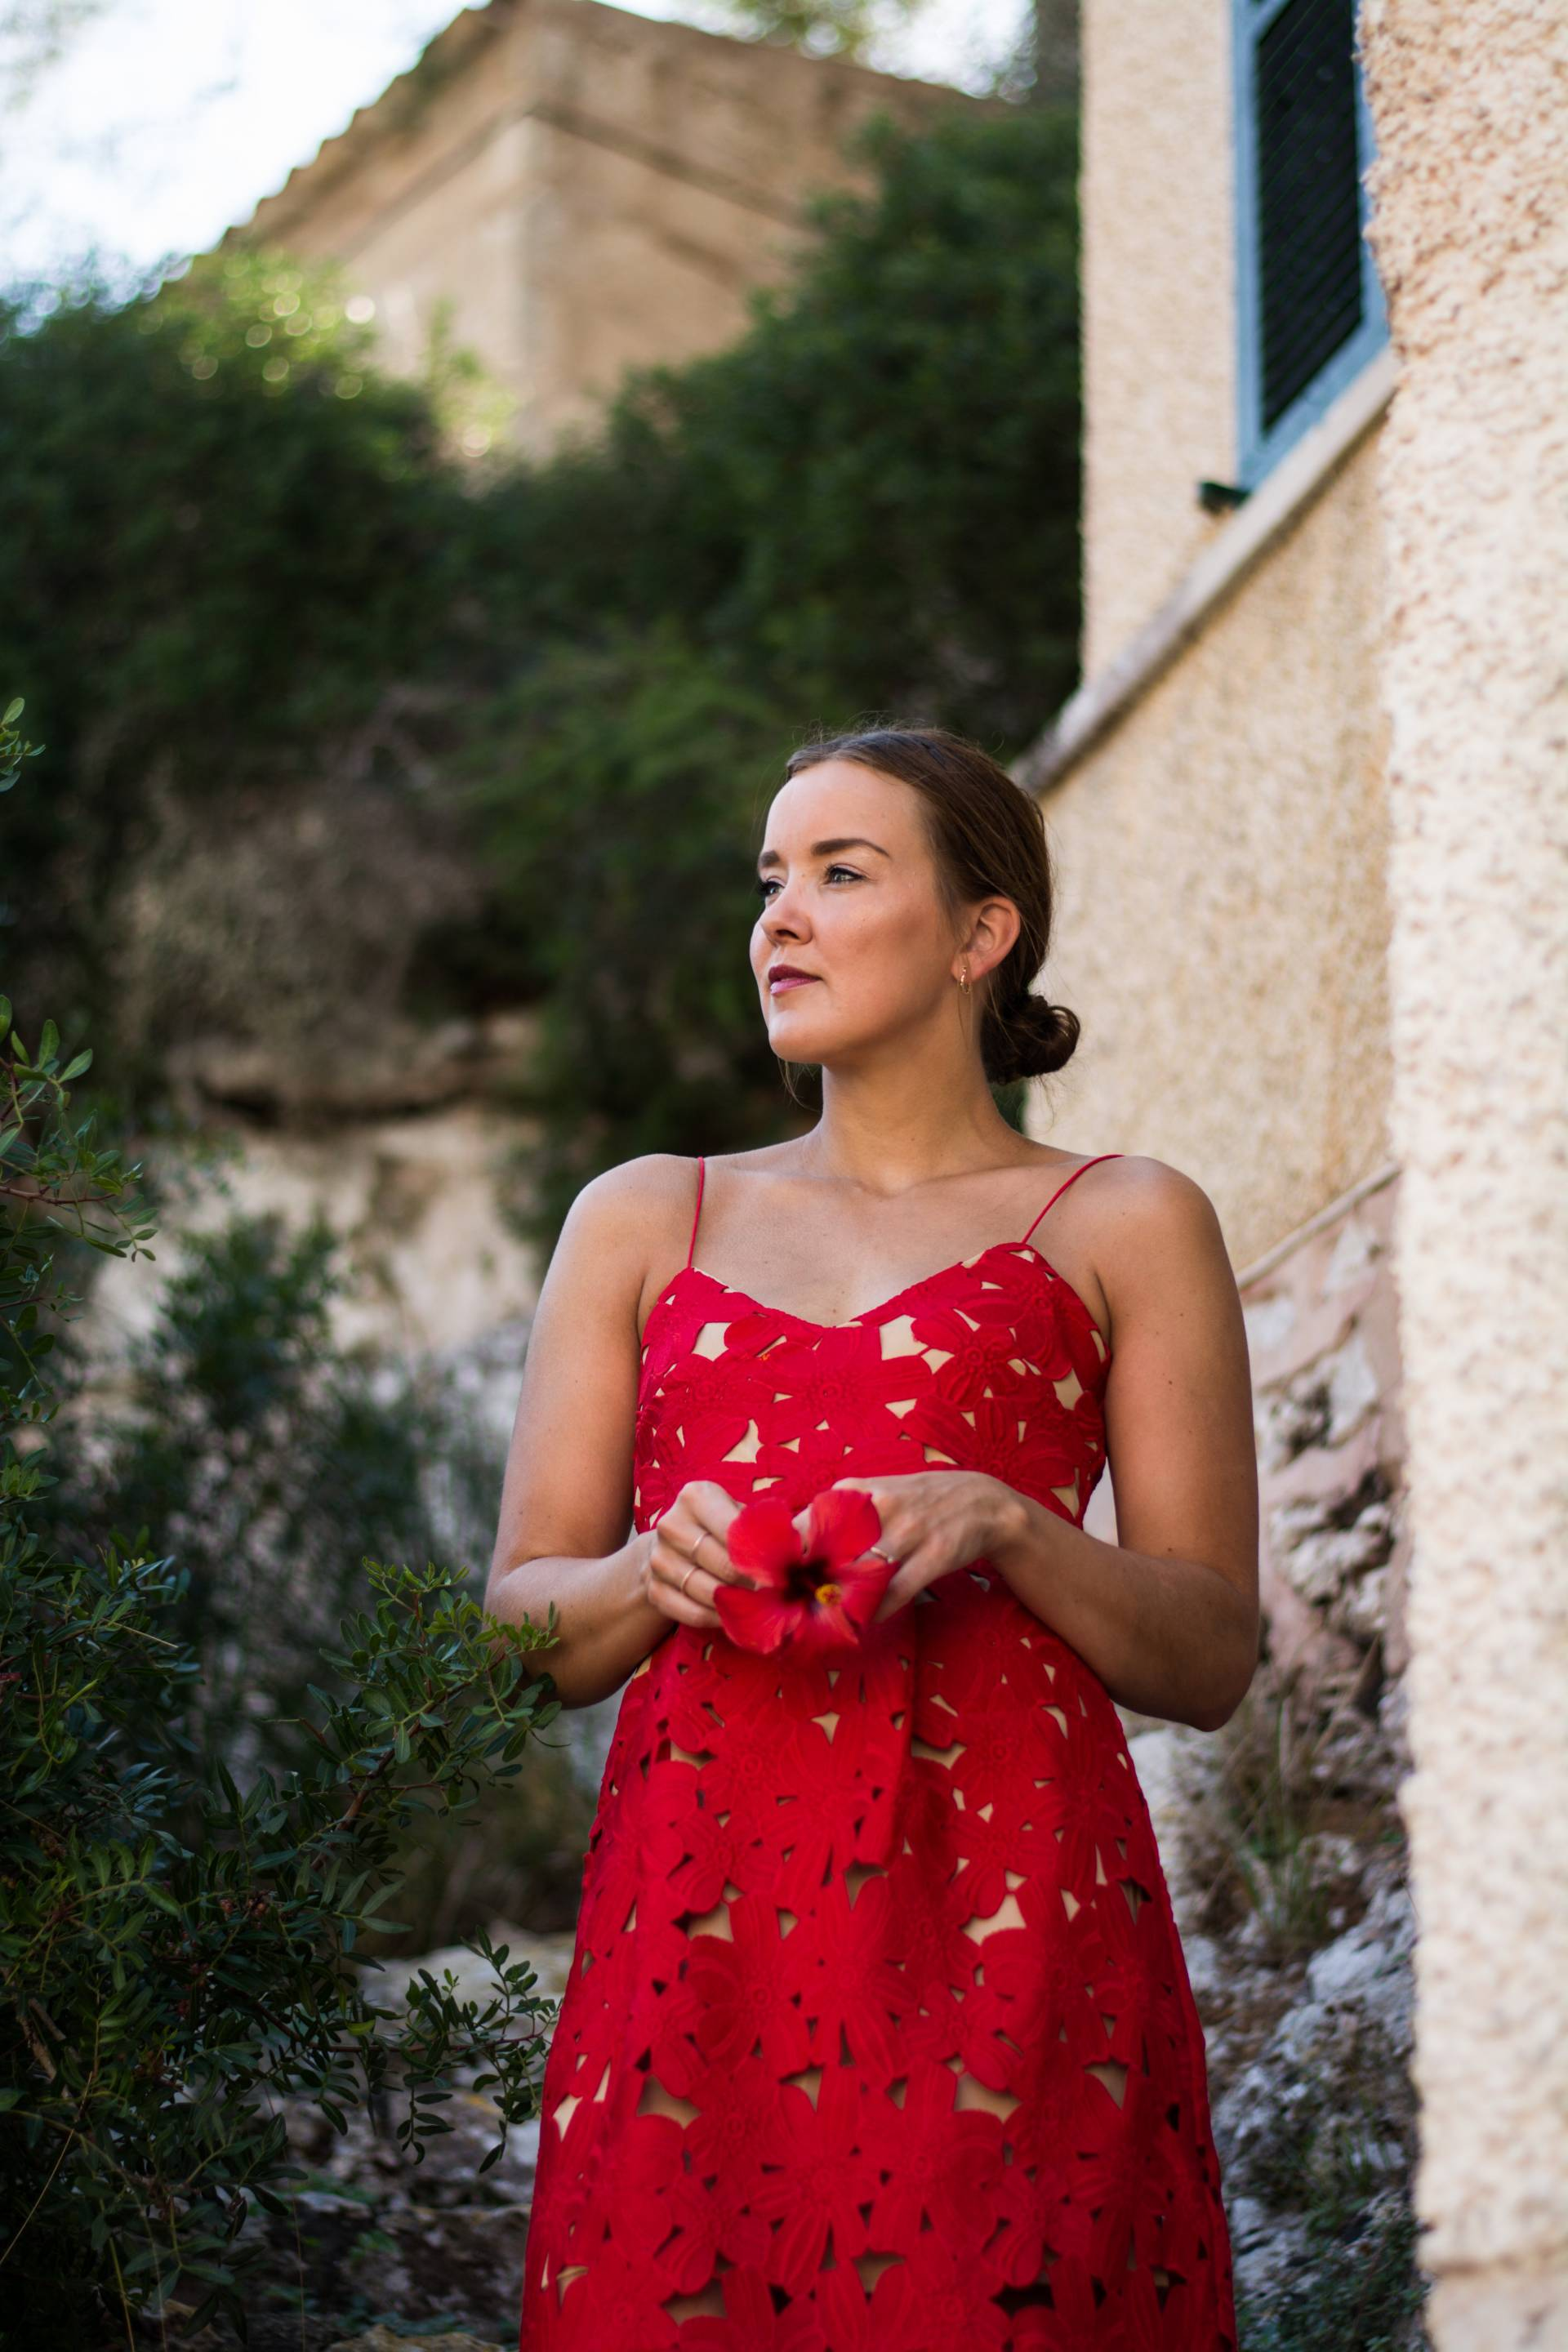 style-appetite-travel-outfit-red-lace-dress-in-cala-figuera-majorca